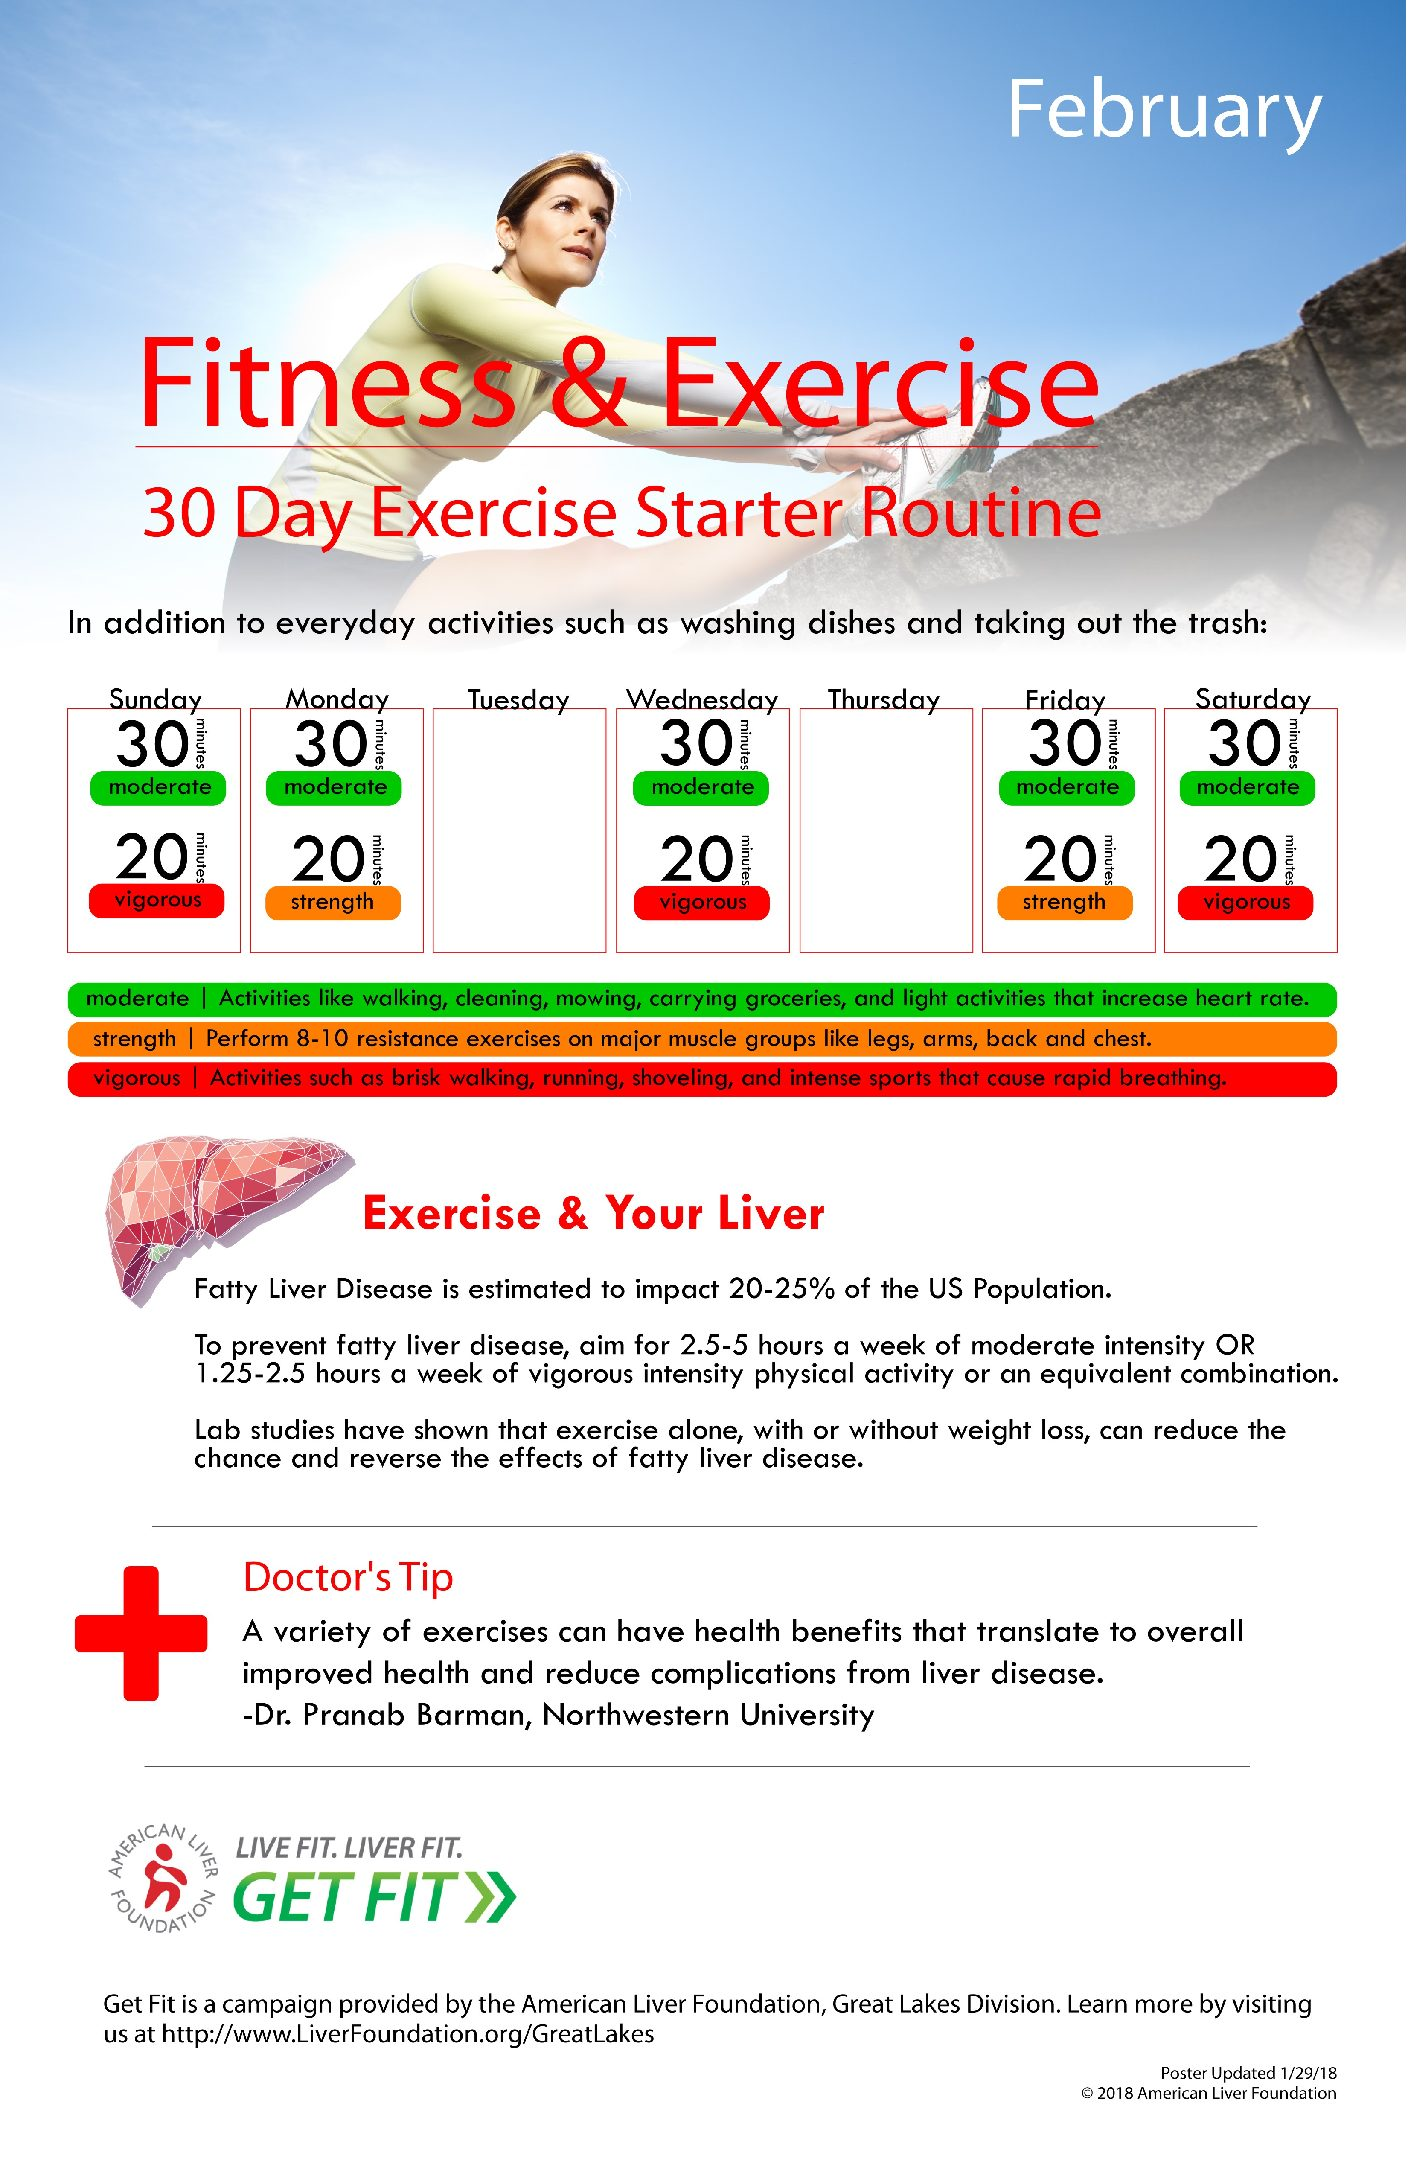 02-03-18-30-day-exercise-starter-routine